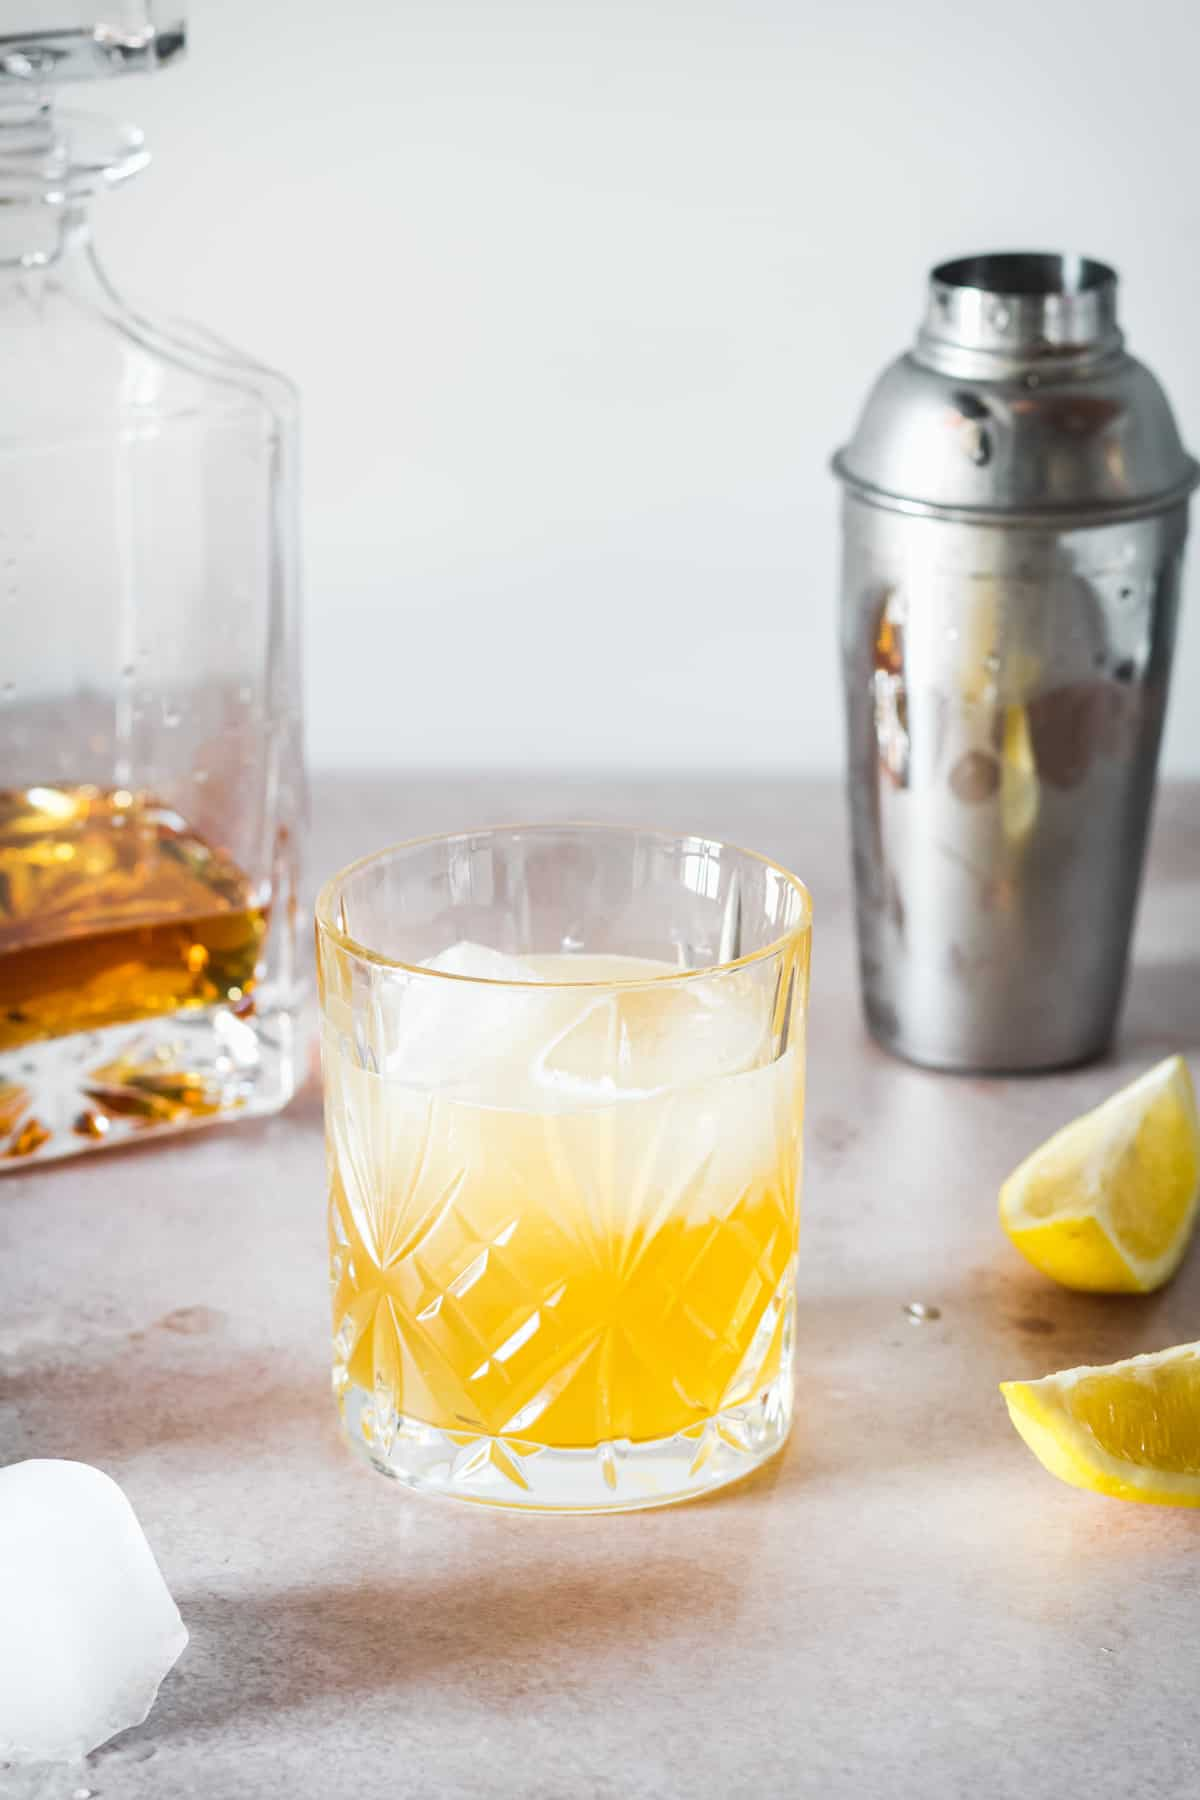 A whiskey sour over ice in front of a bottle of whiskey and a shaker